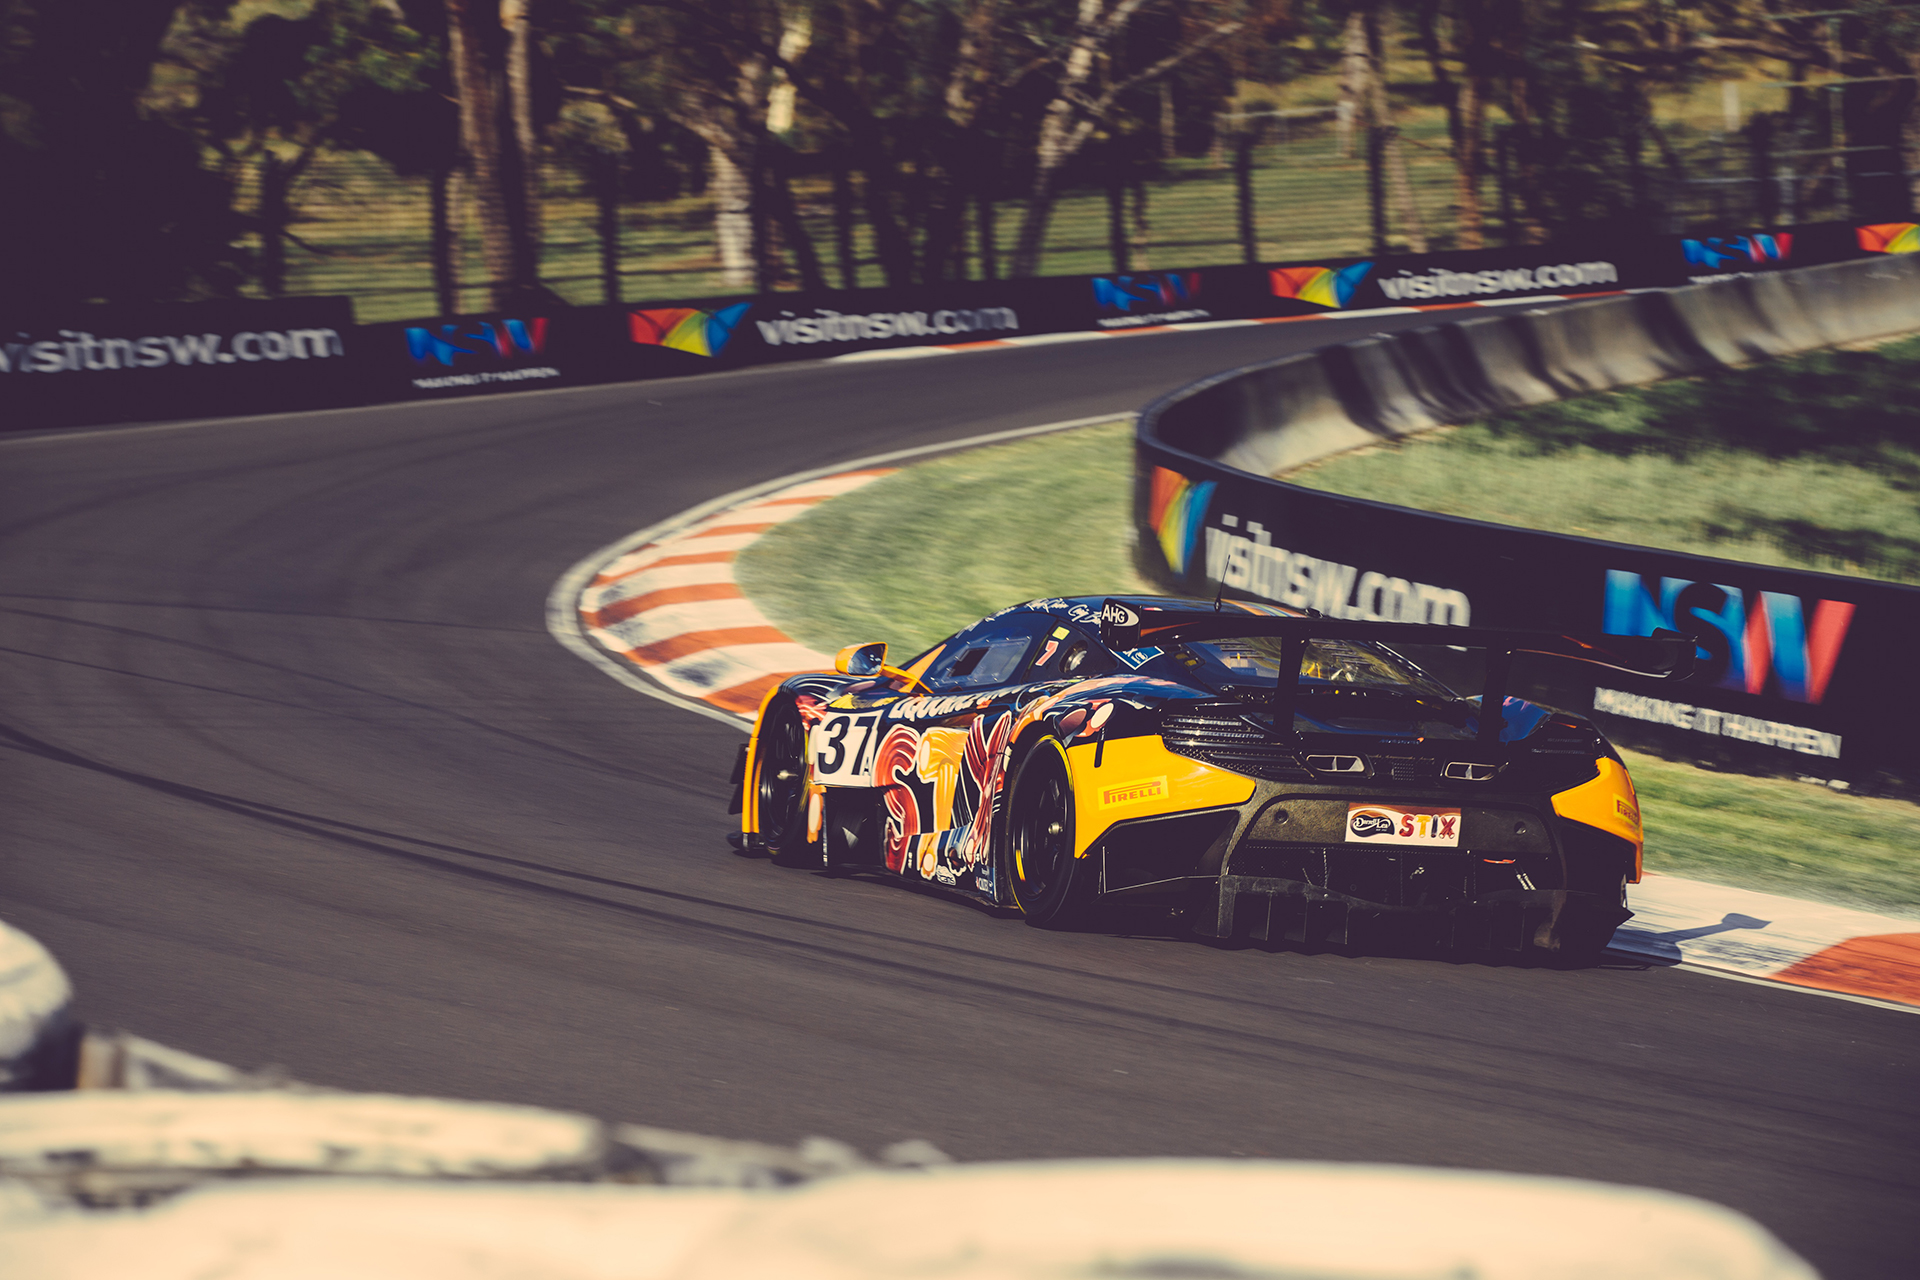 McLaren GT3 - rear - on track - Photo - Bathurst 12hr 2016